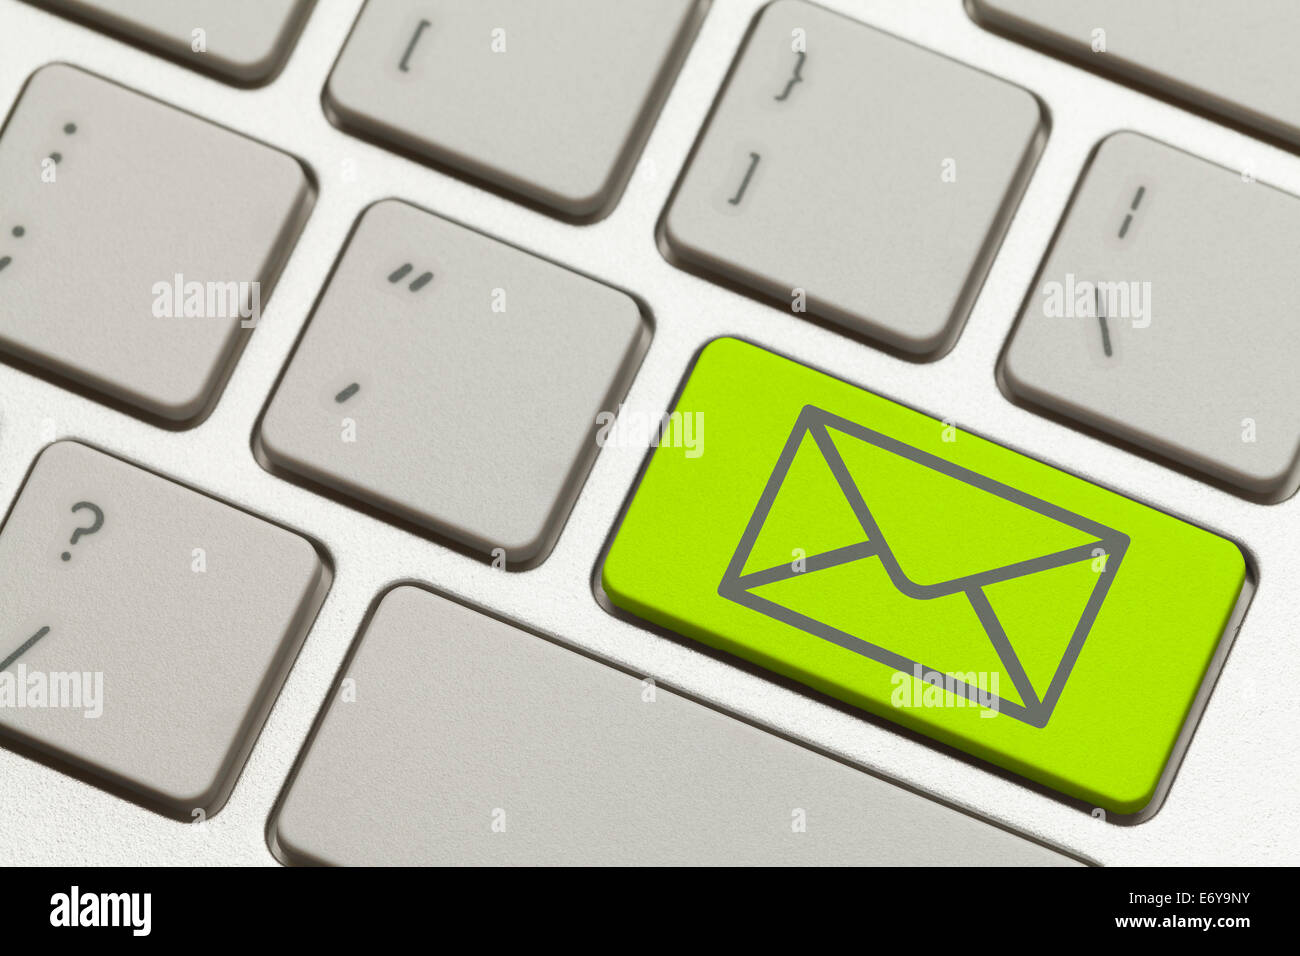 Close Up of Green Email Envelope Key on a Keyboard. - Stock Image